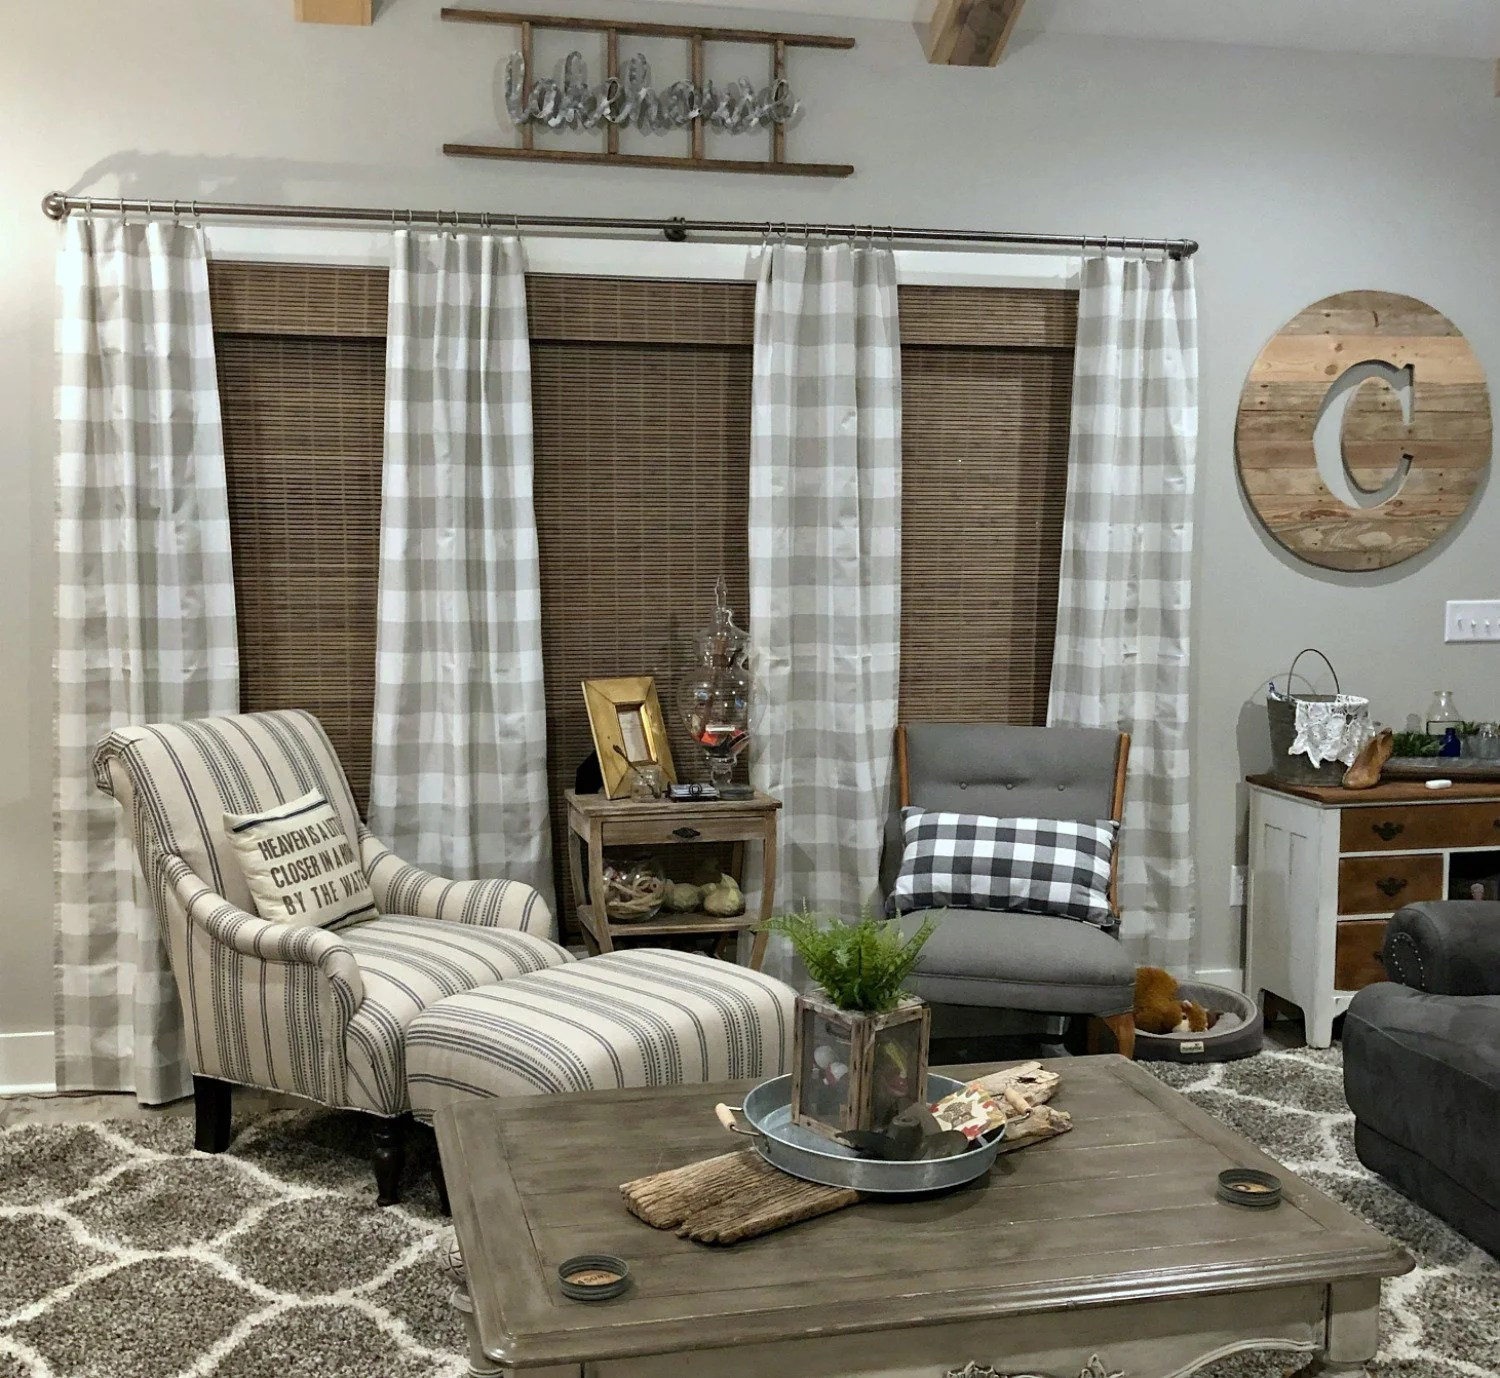 Grey And White Gingham Curtains Farmhouse Curtains French Gray Buffalo Check Buffalo Plaid Curtains Pair Of Rod Pocket Panels Anderson French Grey White Large Gingham